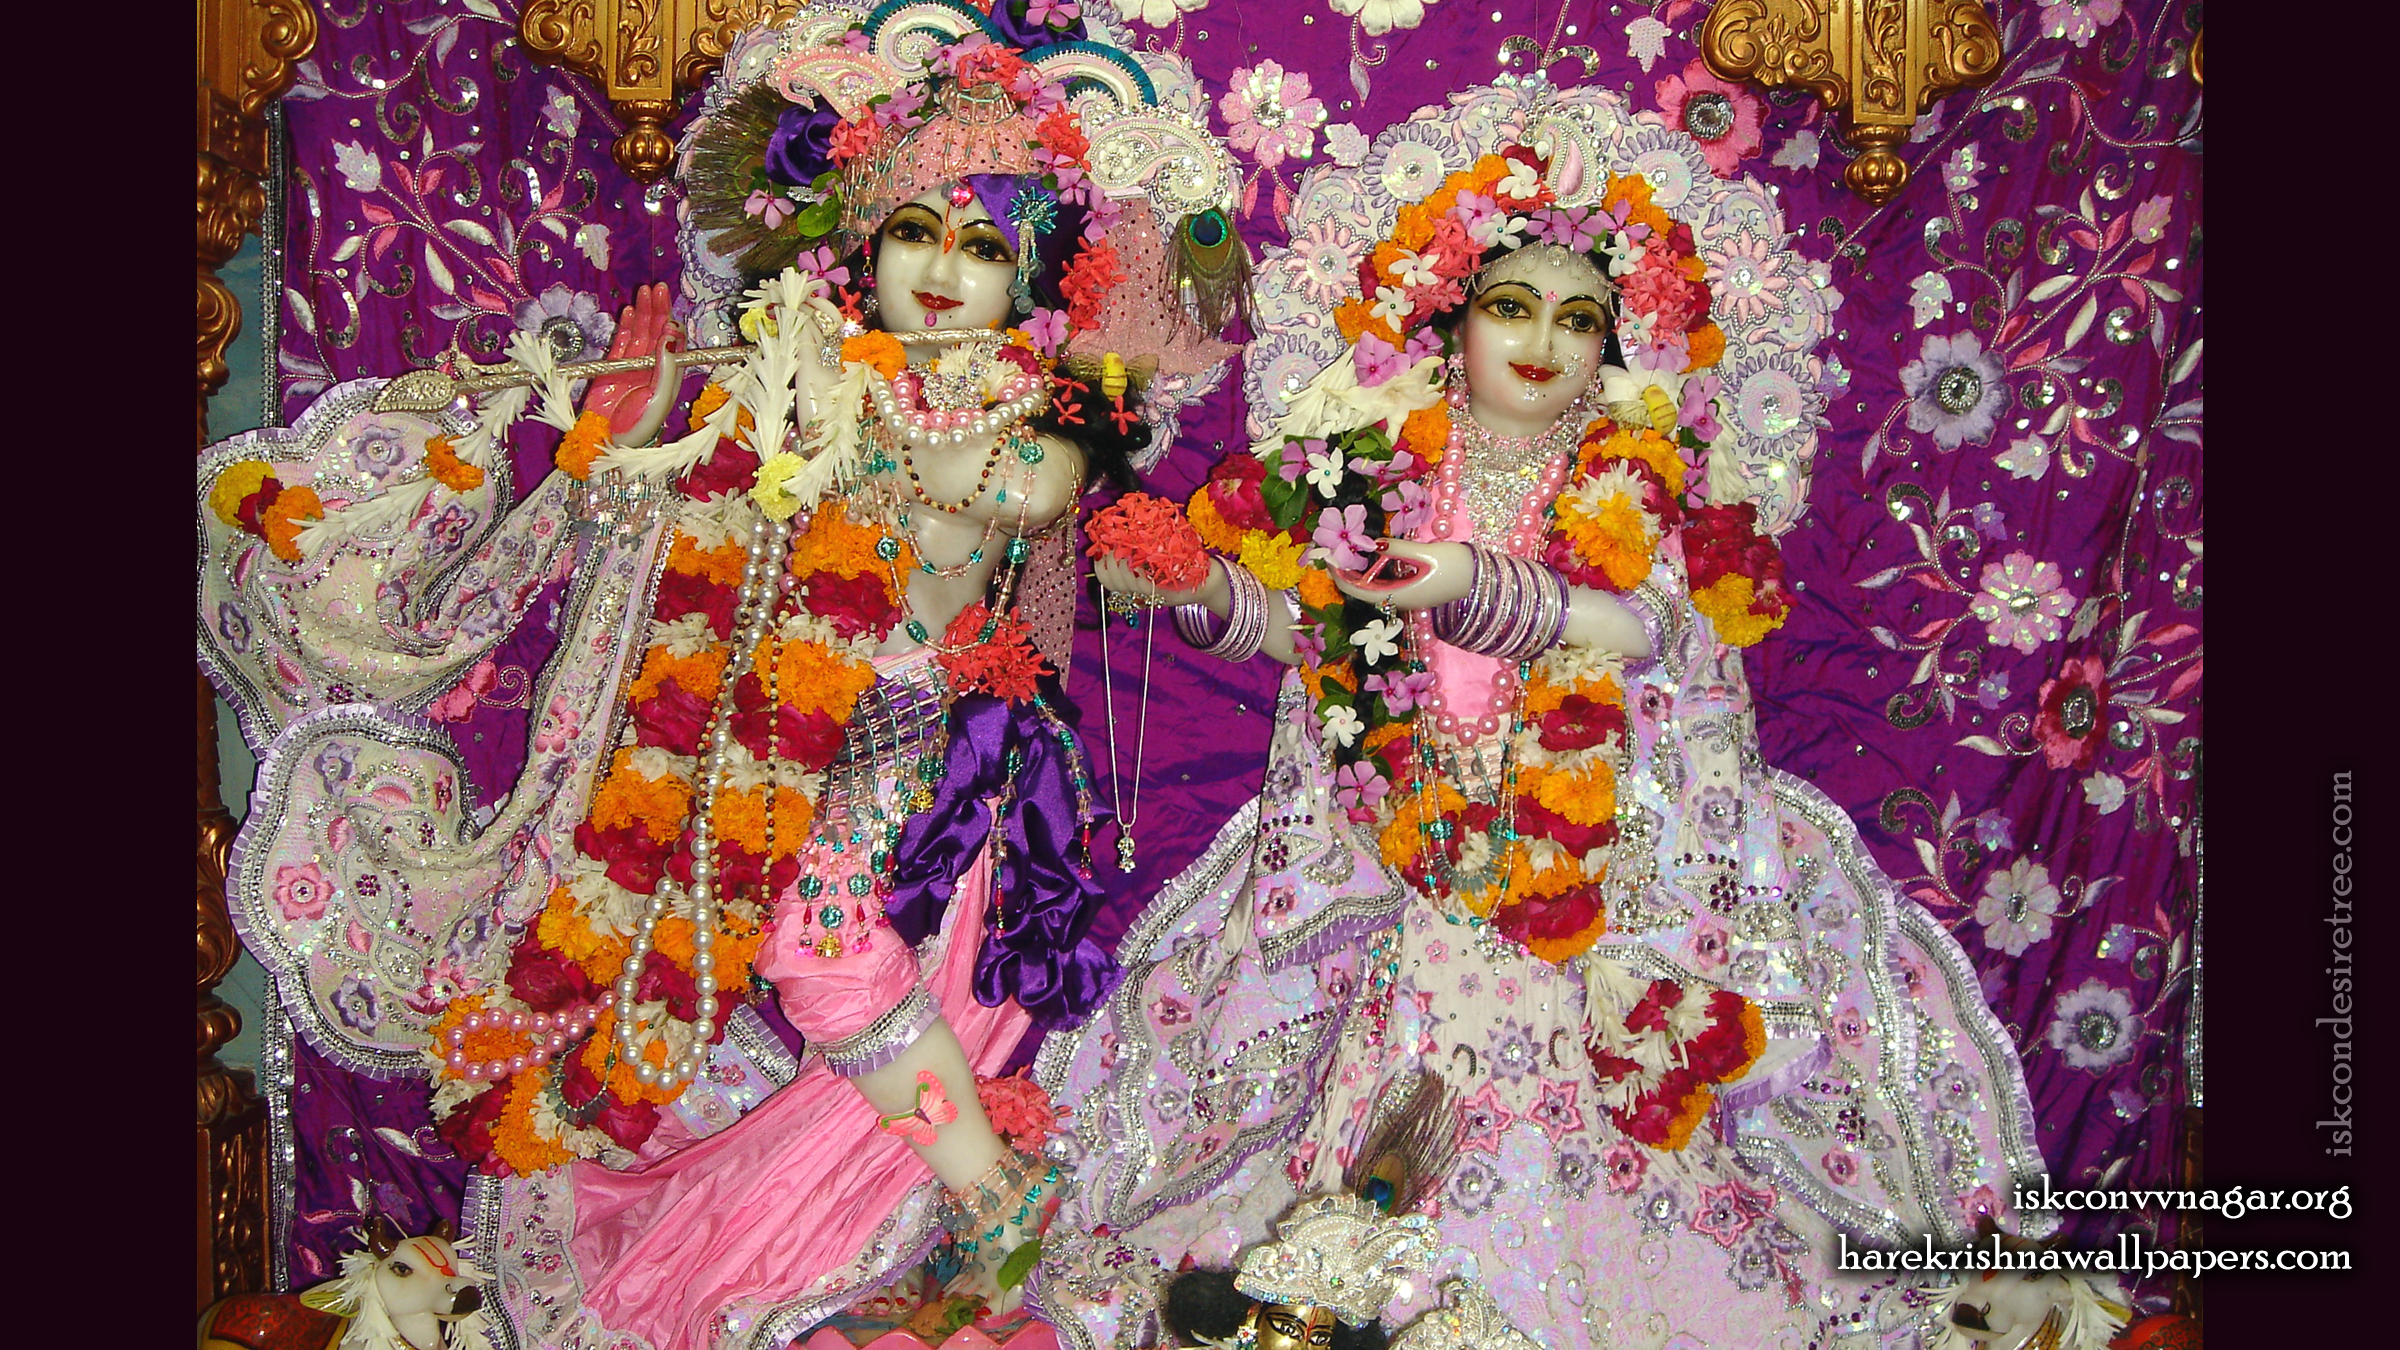 Sri Sri Radha Giridhari Wallpaper (014) Size 2400x1350 Download